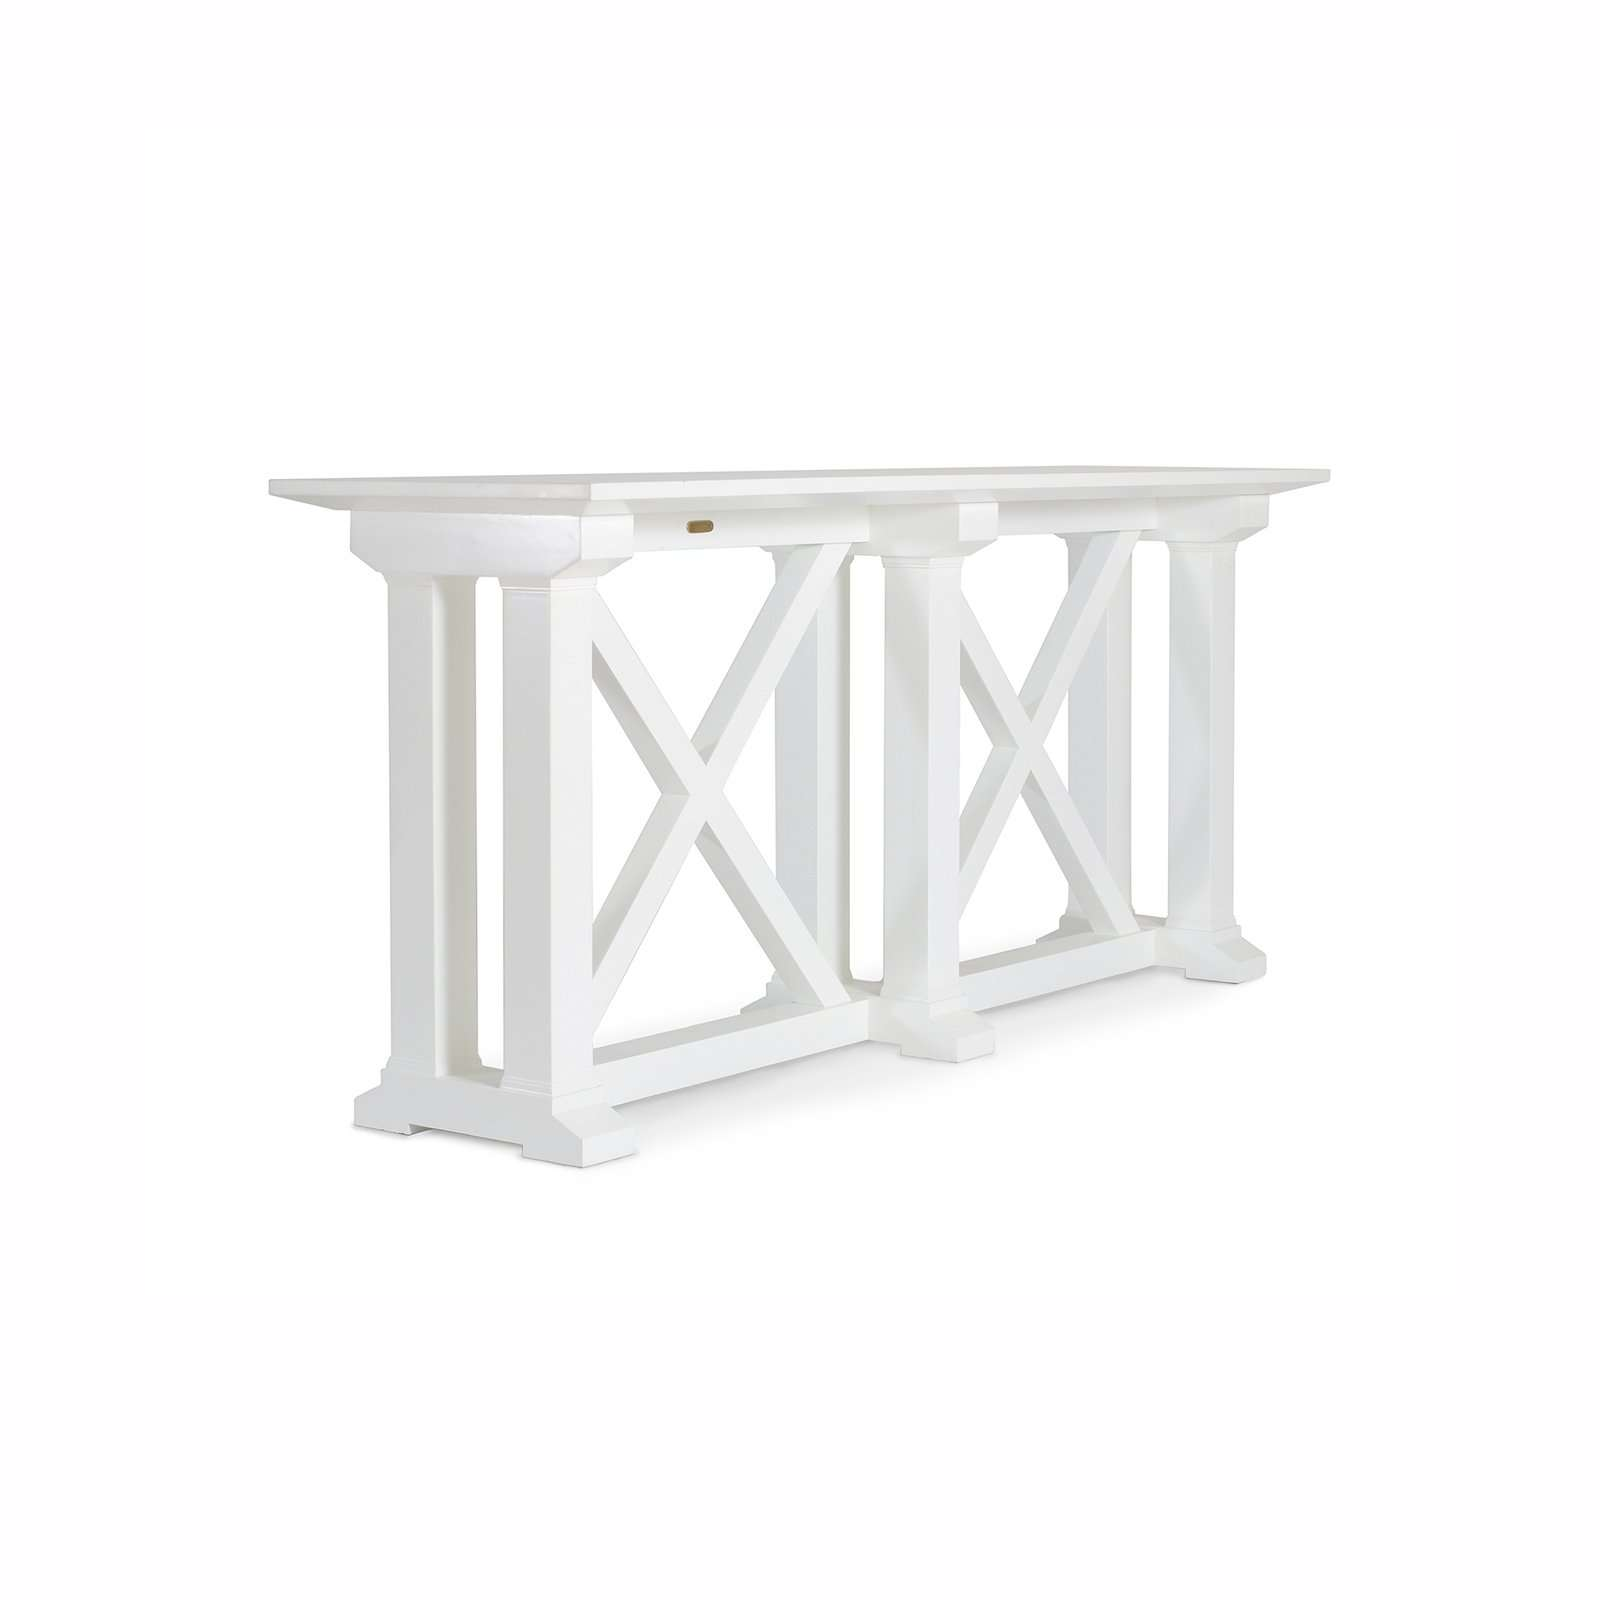 HAMPTON CONSOLE 2 - STUART MEMBERY HOME COLLECTION